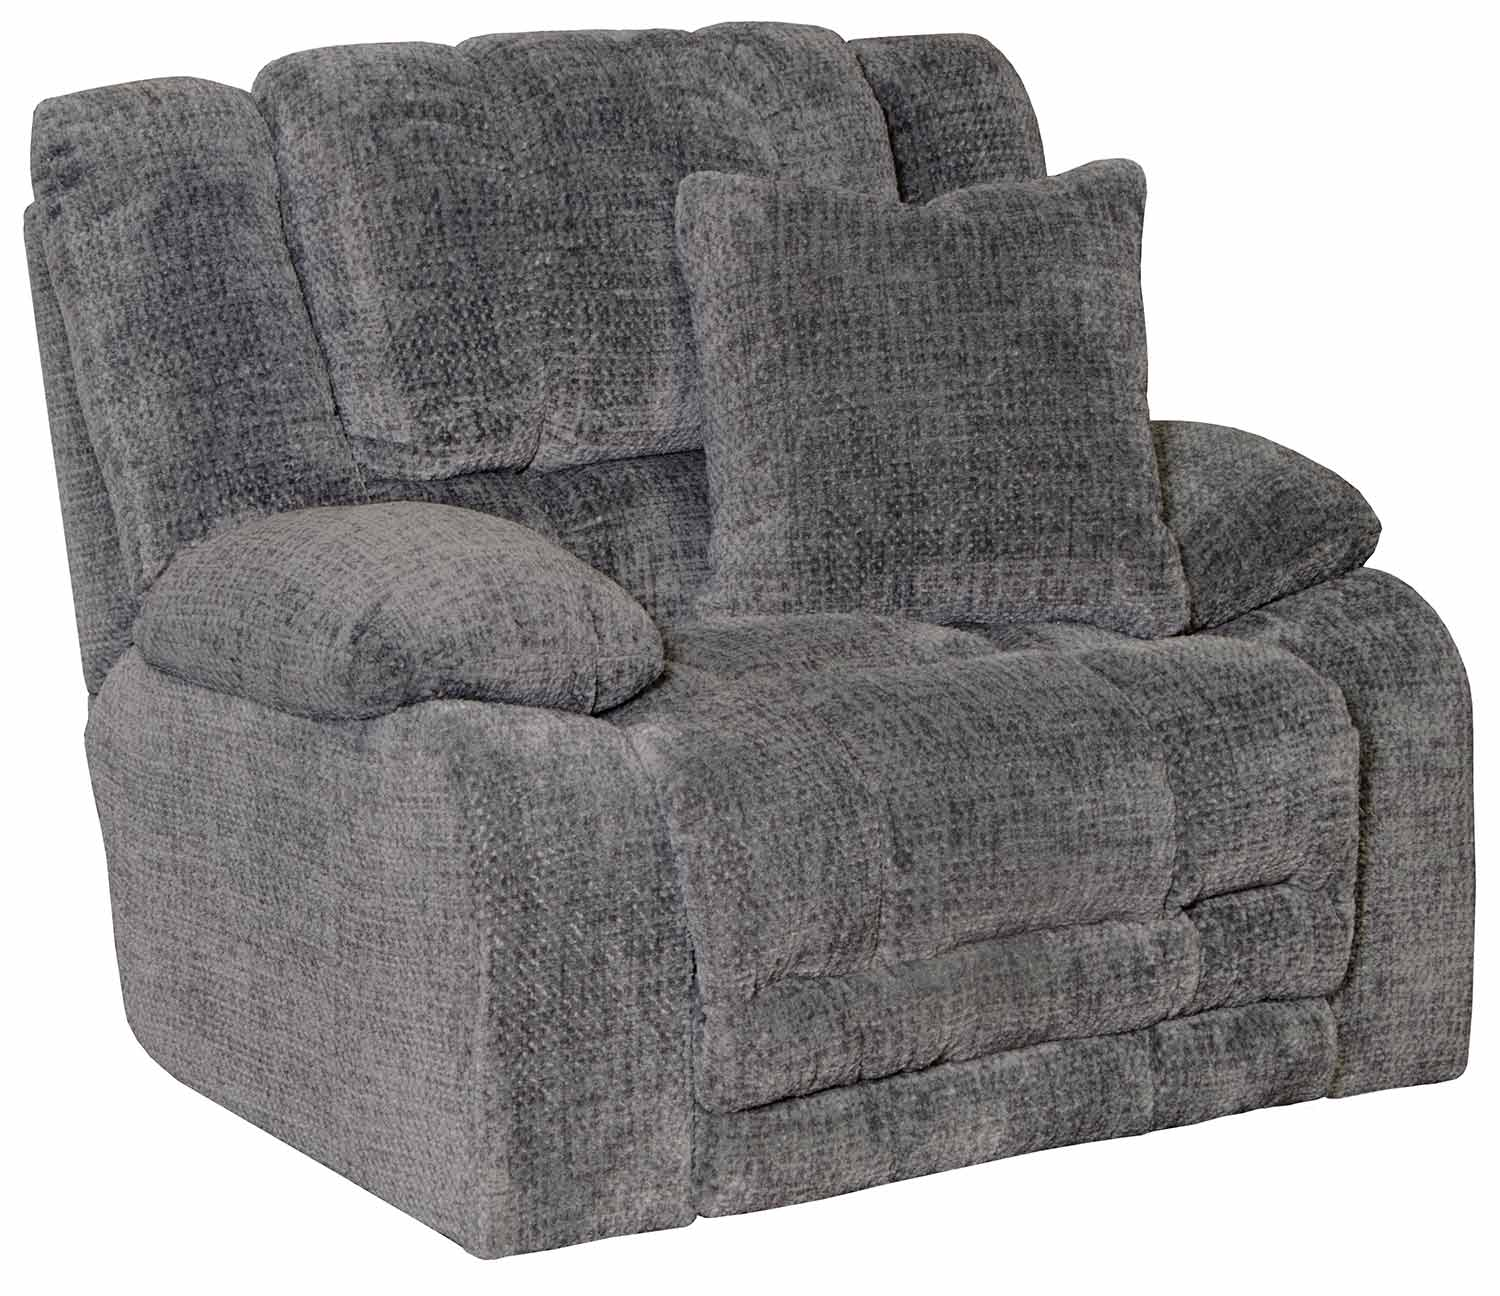 CatNapper Branson Recliner Chair - Pewter